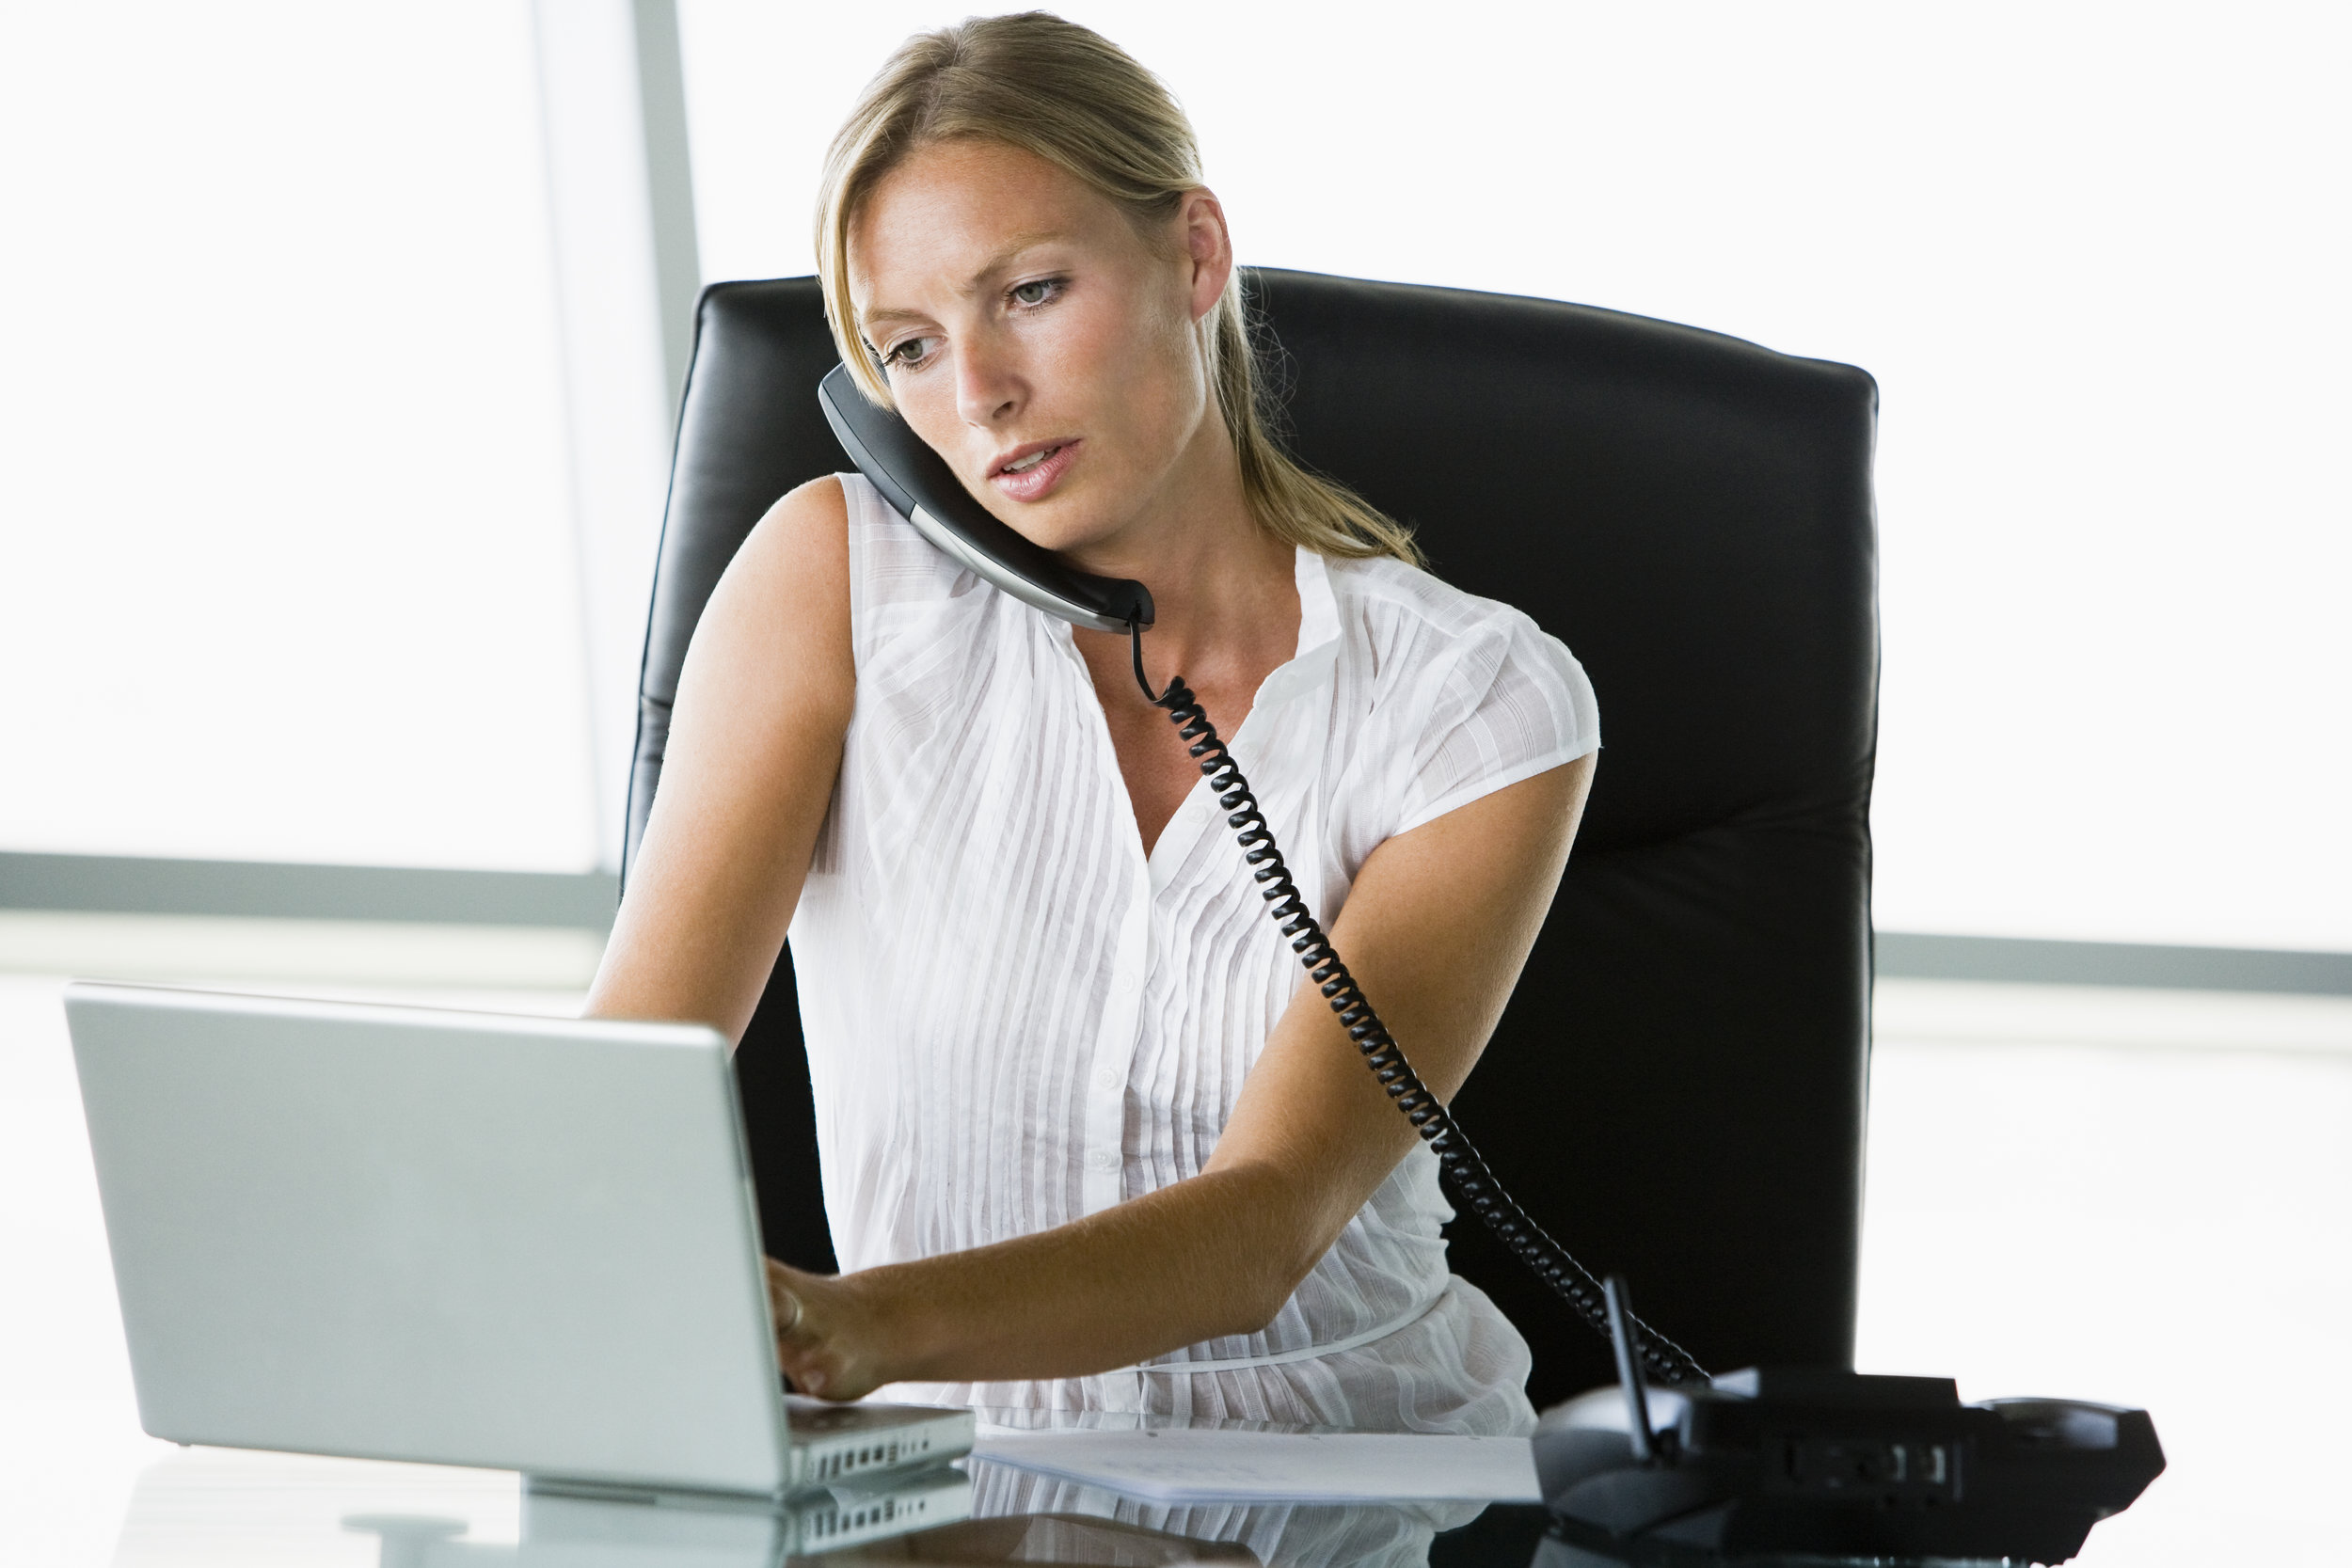 businesswoman-sitting-in-office-with-laptop-on-telephone_SFTqL6prj.jpg